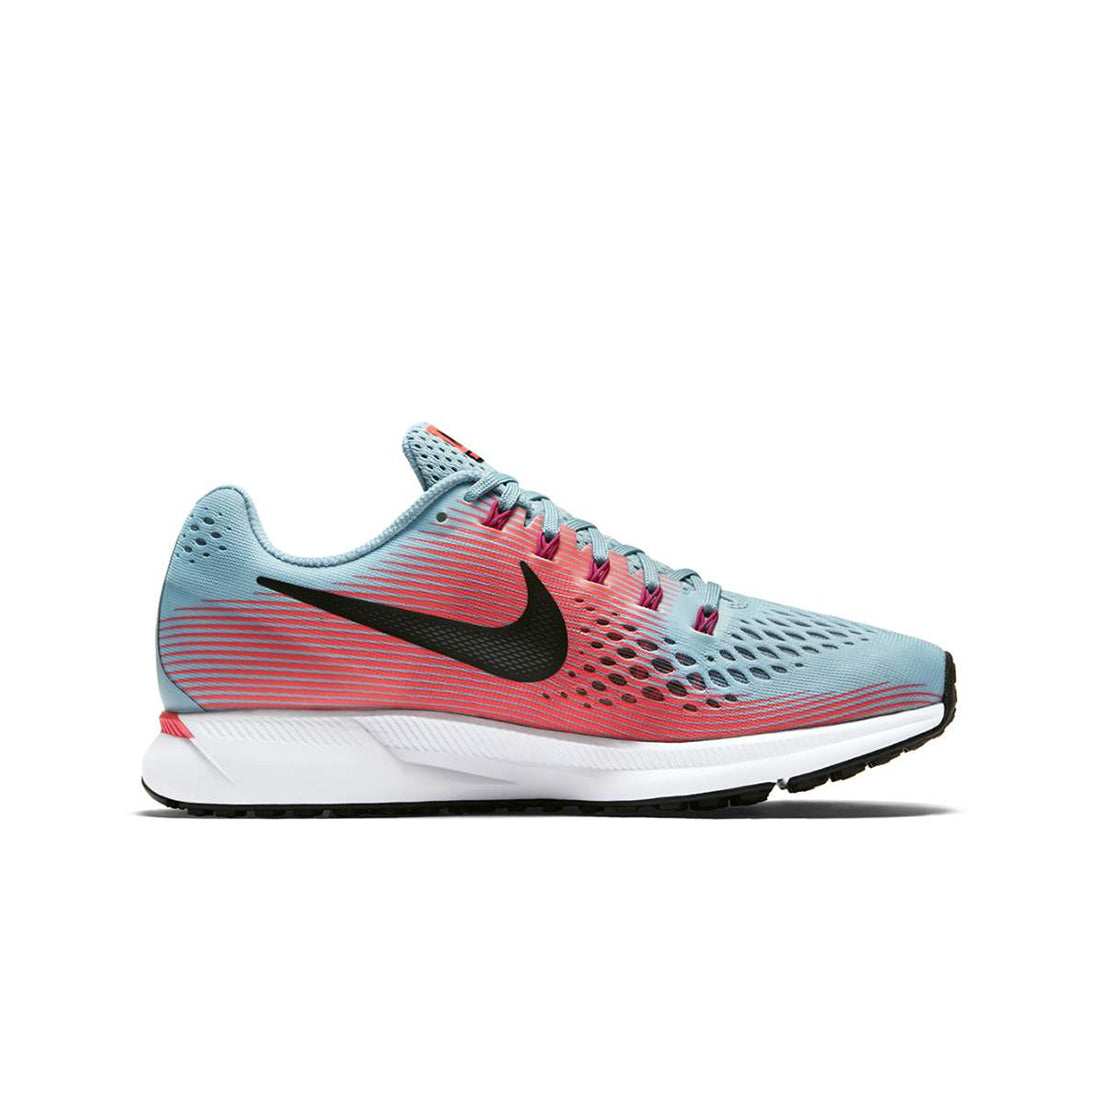 2158612822c8 Women s Air Pegasus 34 Running Shoe - Mica Blue White Racer Pink – Gazelle  Sports